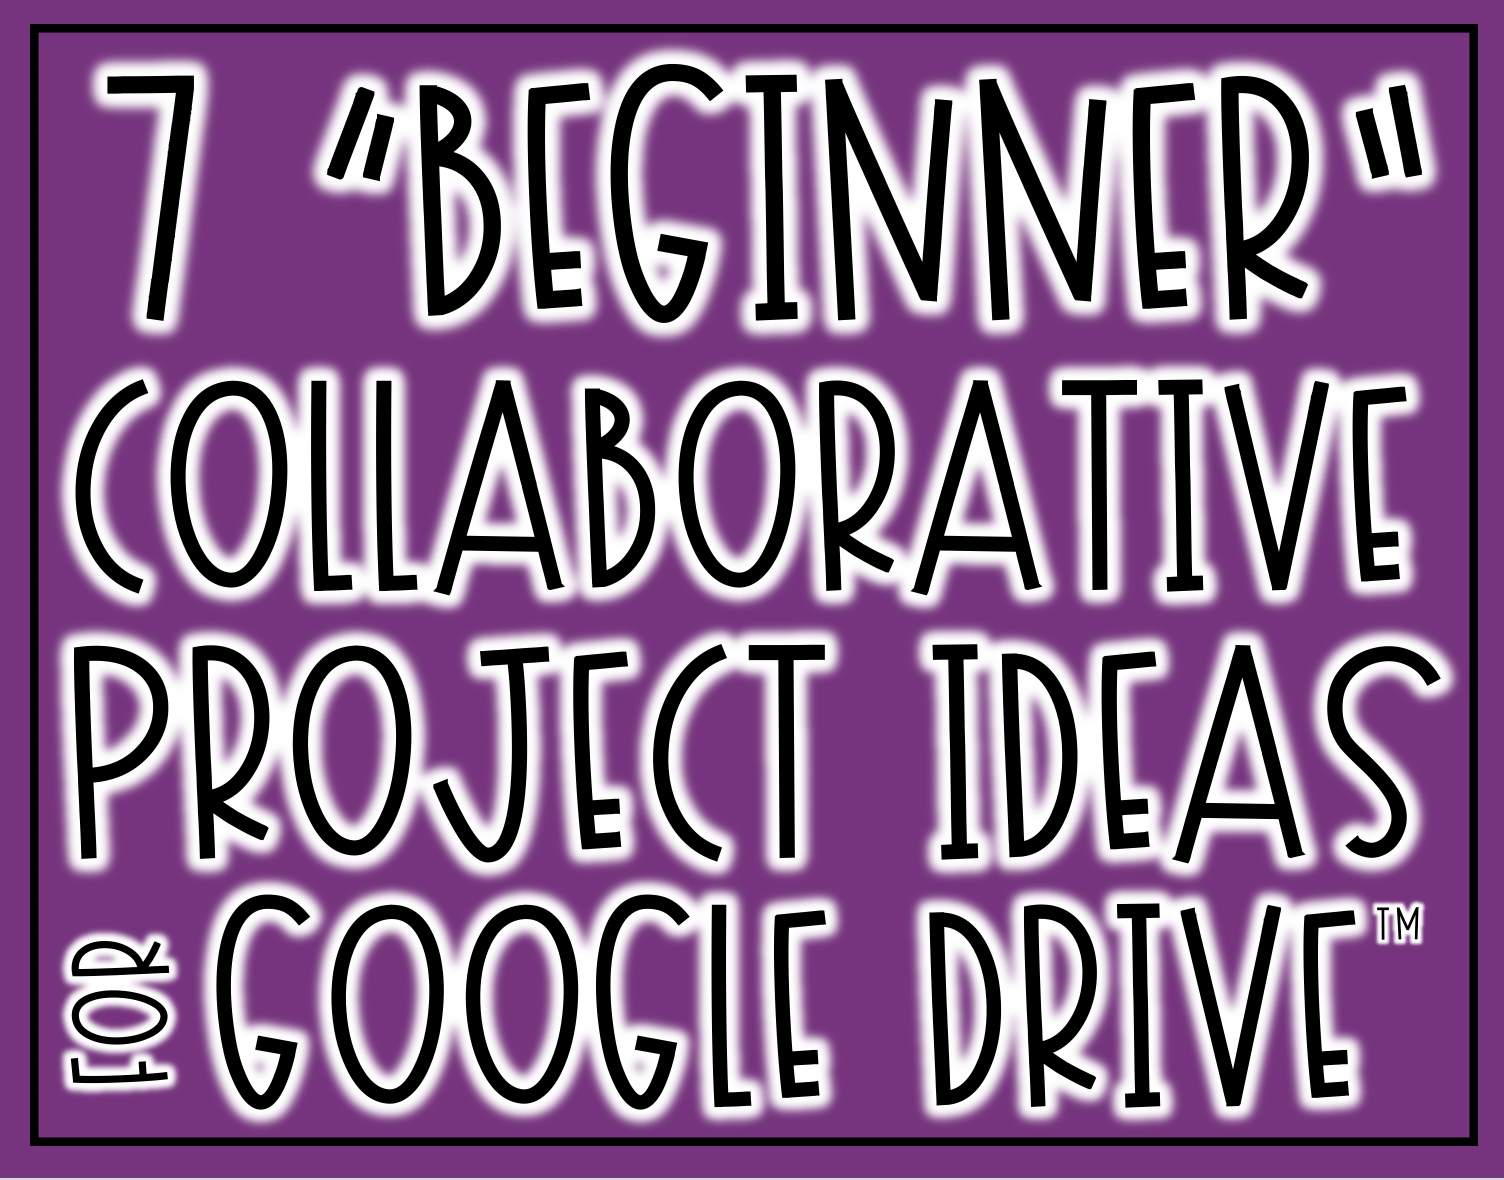 7 Beginner Collaborative Project Ideas in Google Drive™: These  project ideas help guide students in understanding how to contribute their fair share when working collaboratively with others. It is the first step in becoming a successful collaborator.